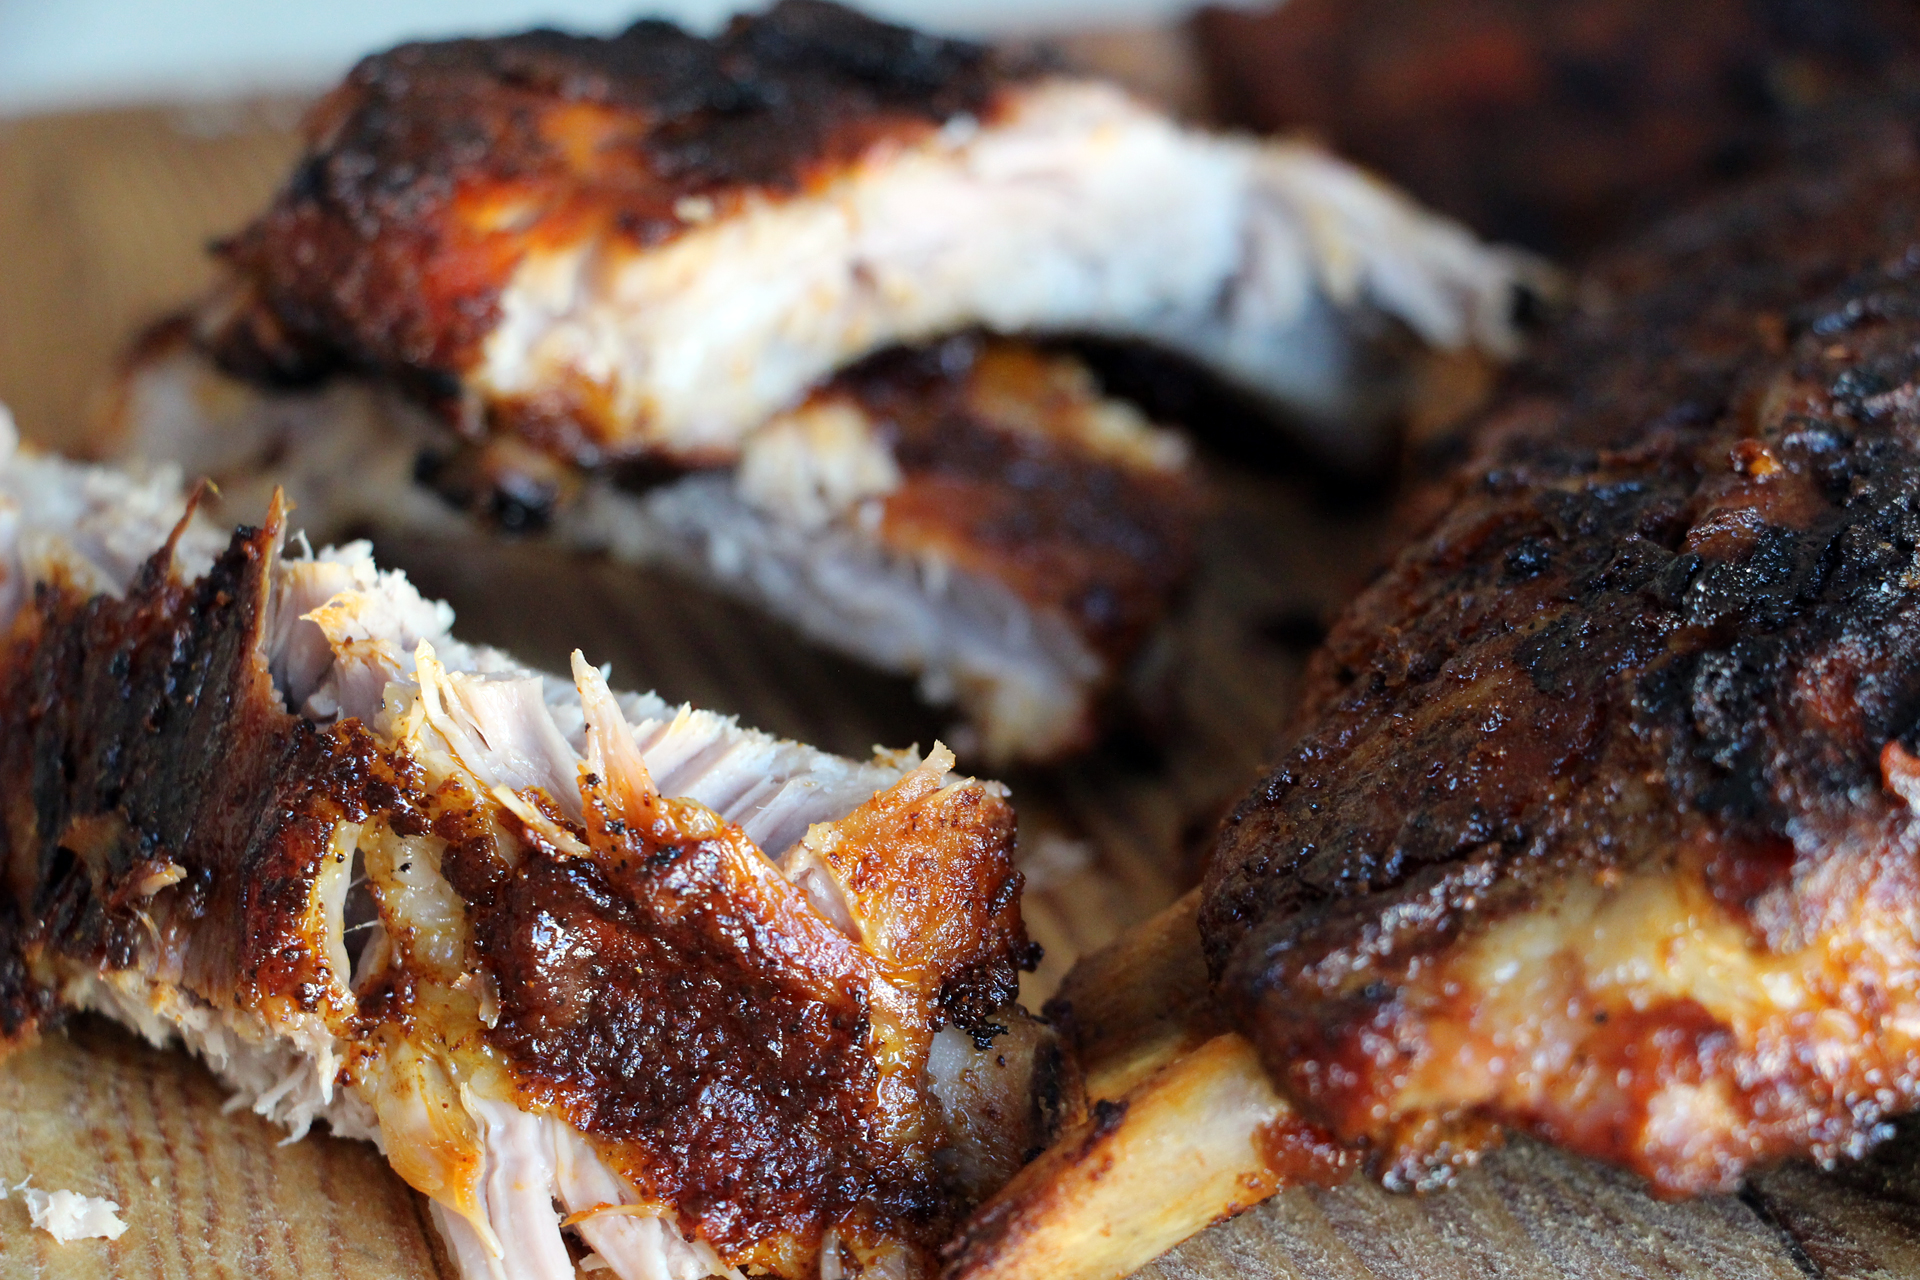 Transfer the ribs to a cutting board and cut between the bones. Serve right away.